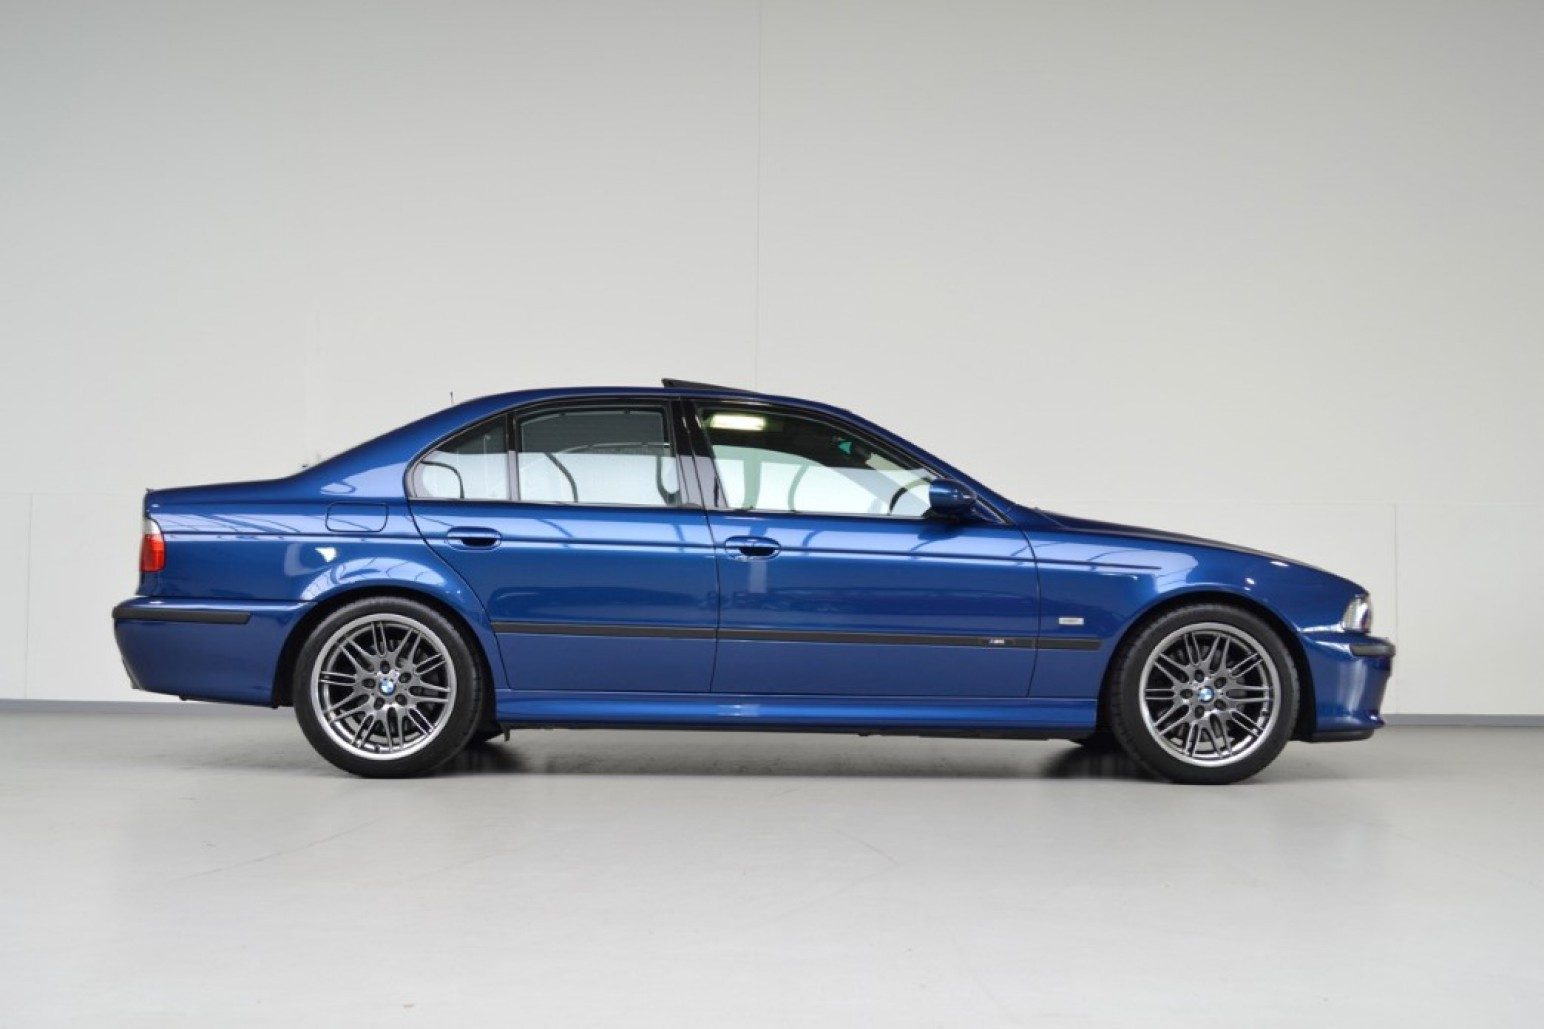 1999 bmw m5 e39 avusblauw metallic zum kauf bei auto leitner. Black Bedroom Furniture Sets. Home Design Ideas